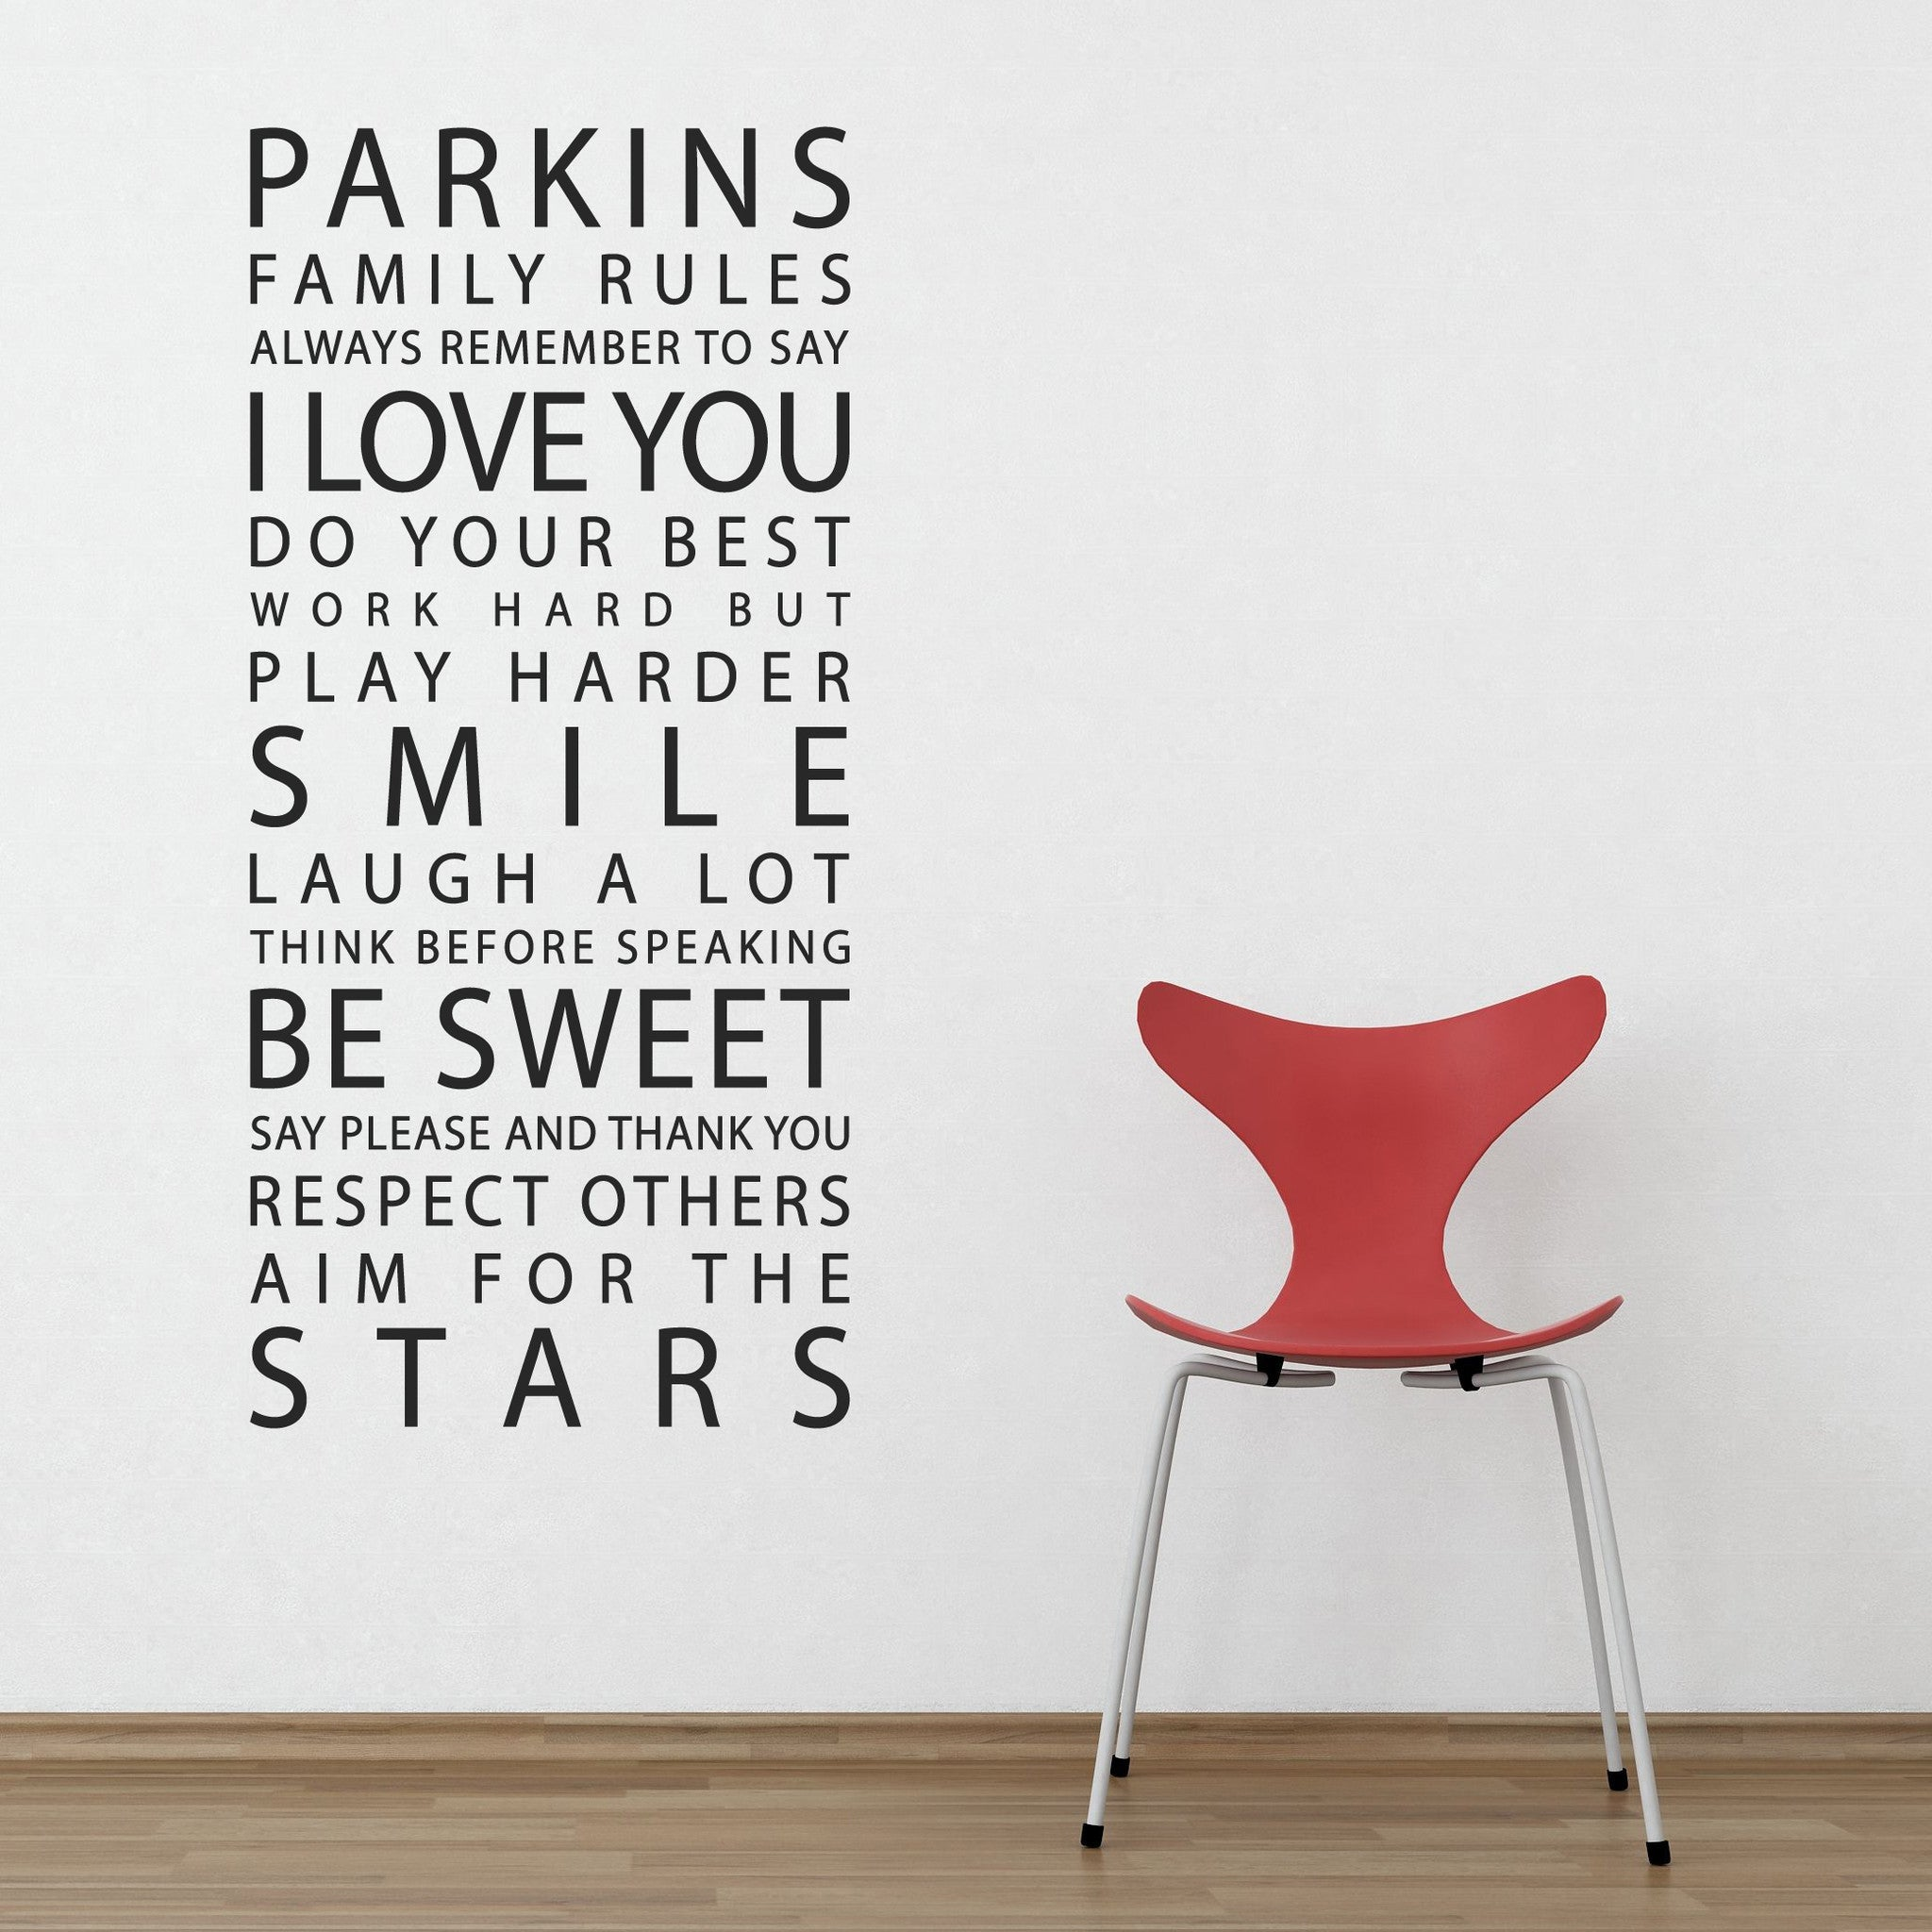 personalised family rules wall stickers parkins interiors personalised family rules wall stickers